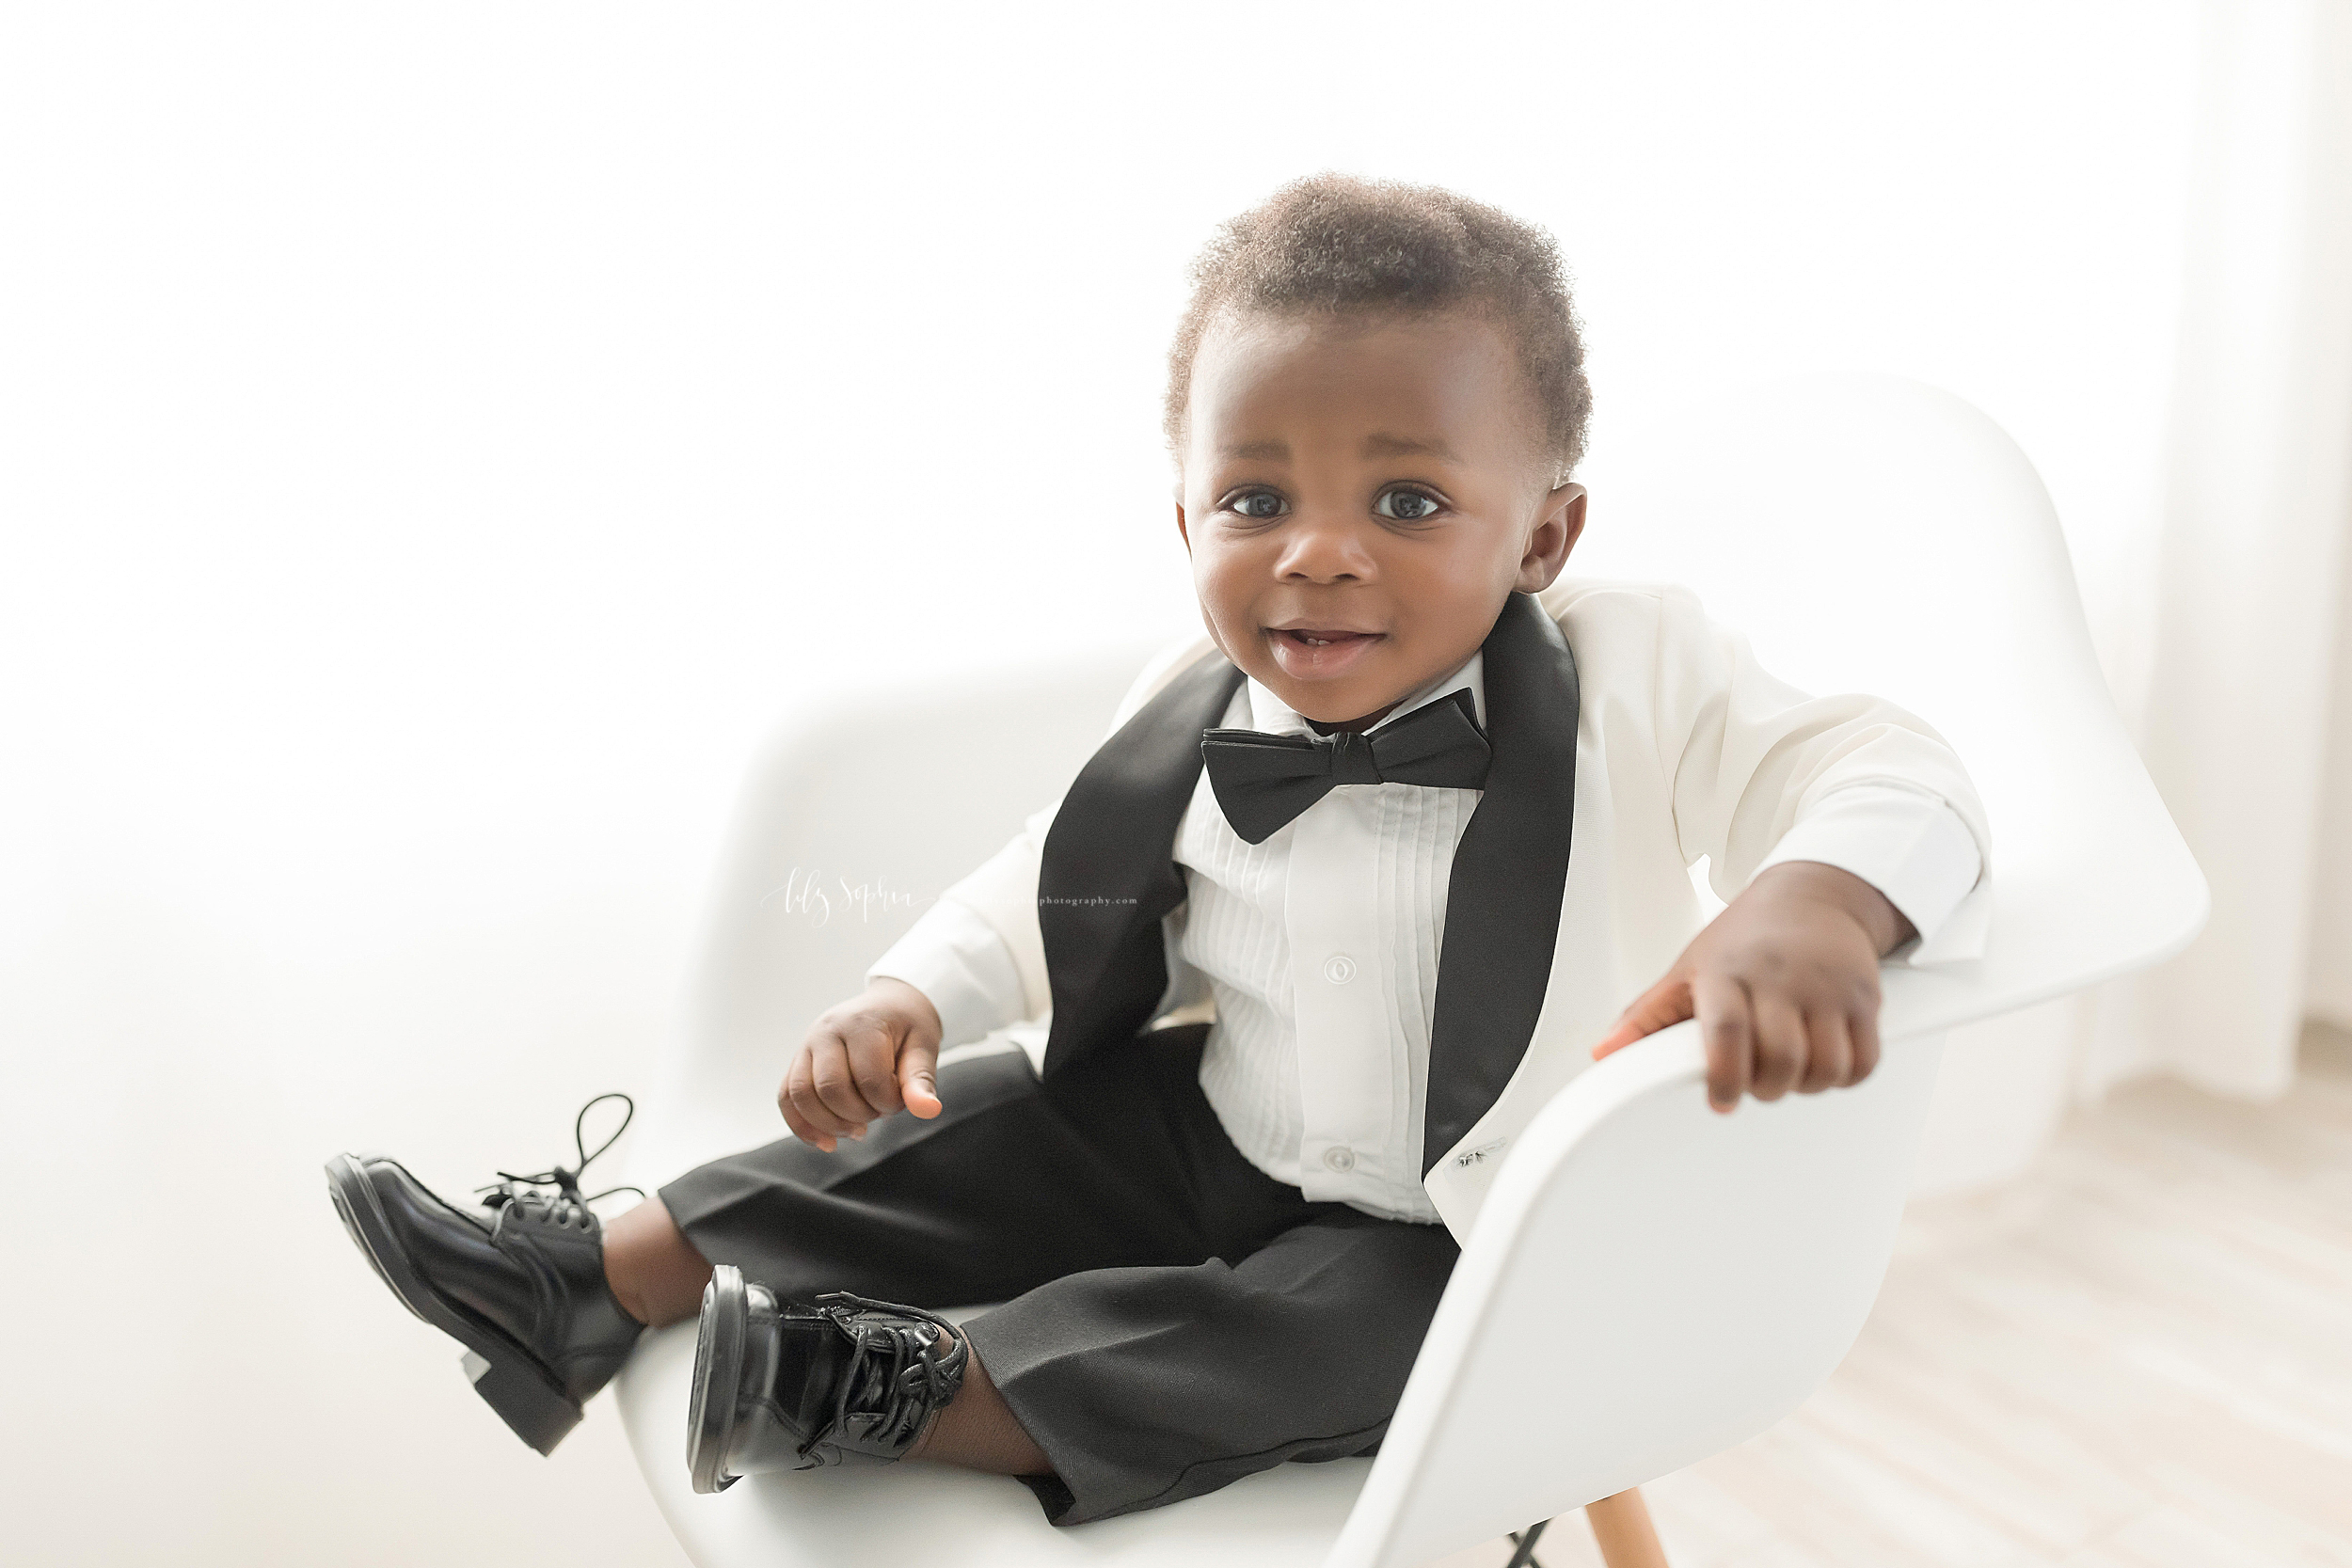 Photograph of an African-American little boy sitting in a molded white chair in a tuxedo.  The little boy is wearing black pants, black oxford shoes, and a white tuxedo jacket with black accents.  He is holding the chair with his left hand and is smiling.